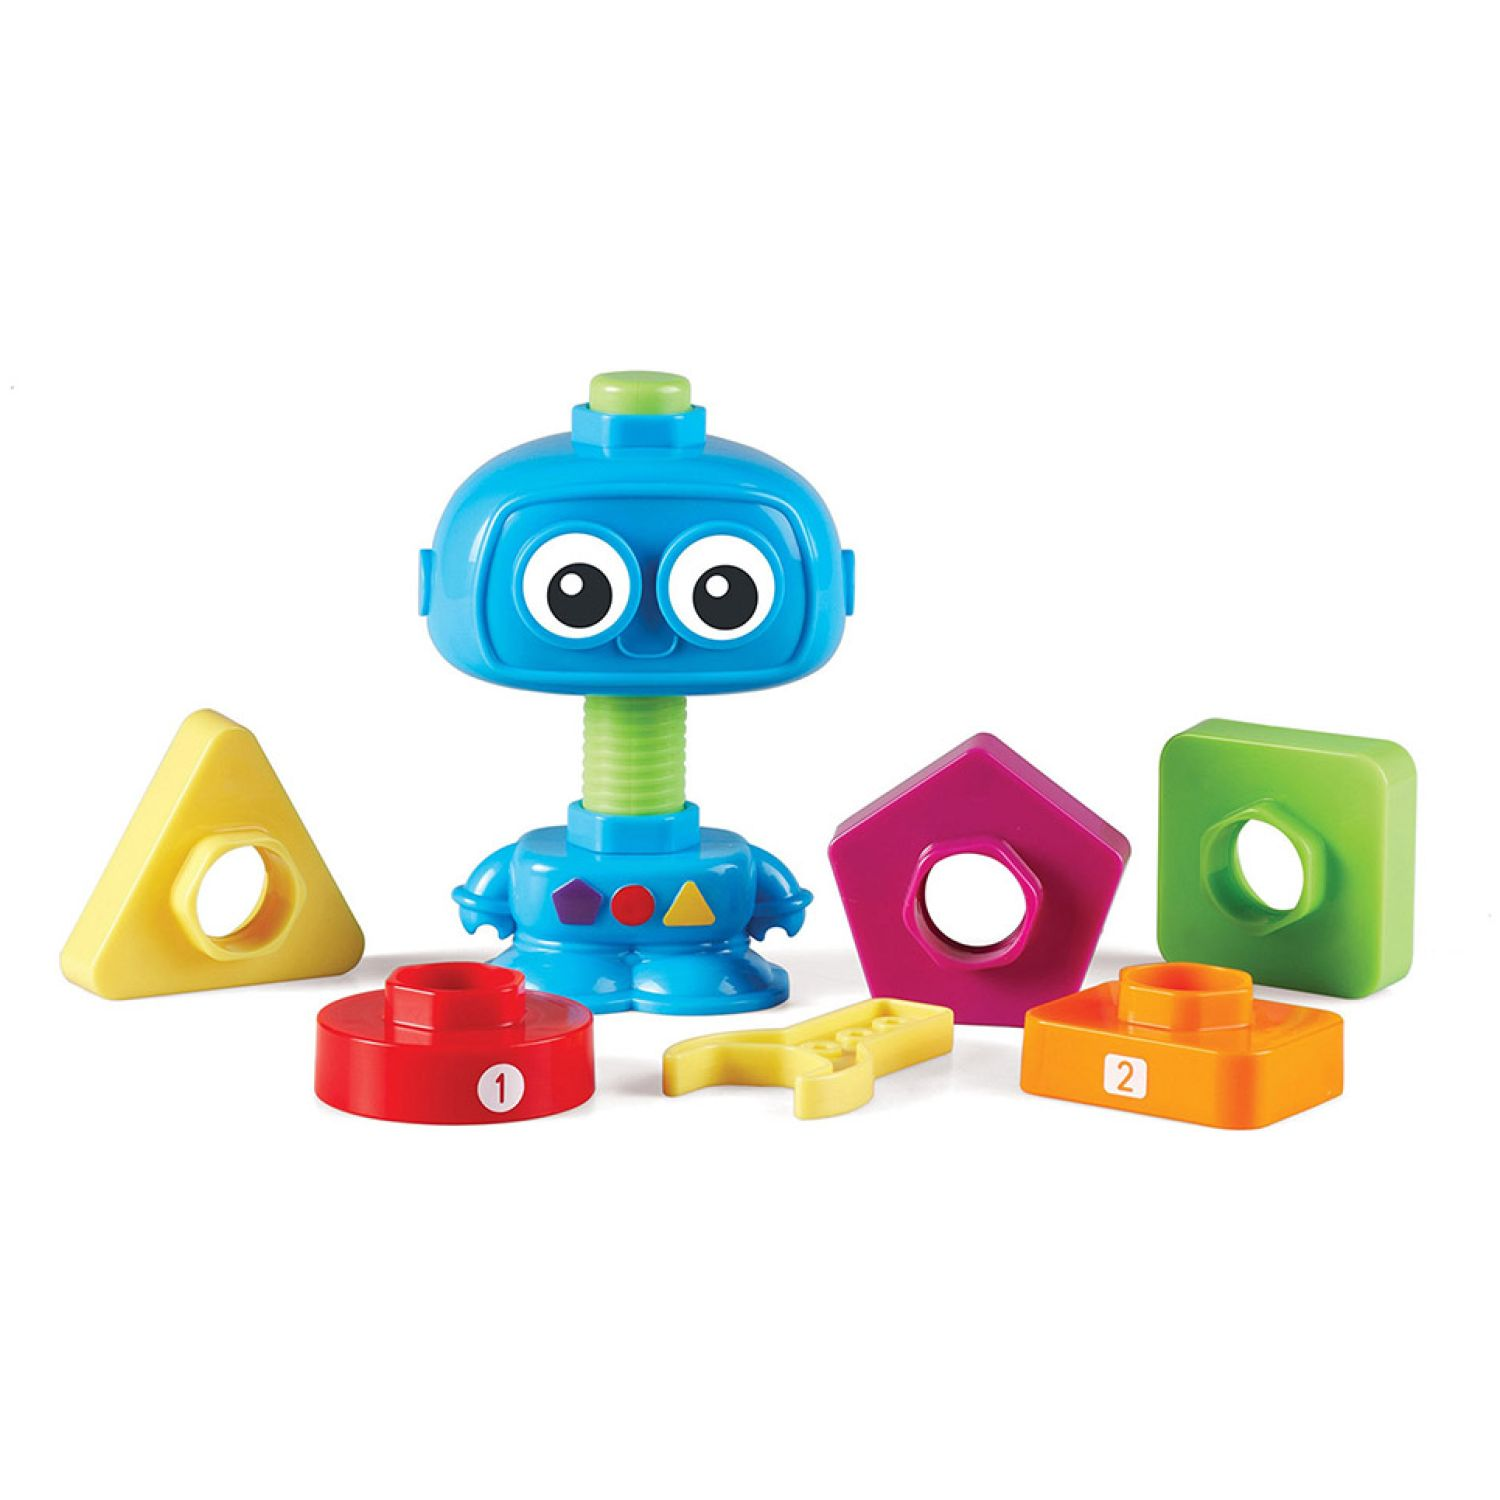 LEARNING RESOURCES Robot Para Contar Y Construir Totbot MULTICOLOR Juegos de construcción